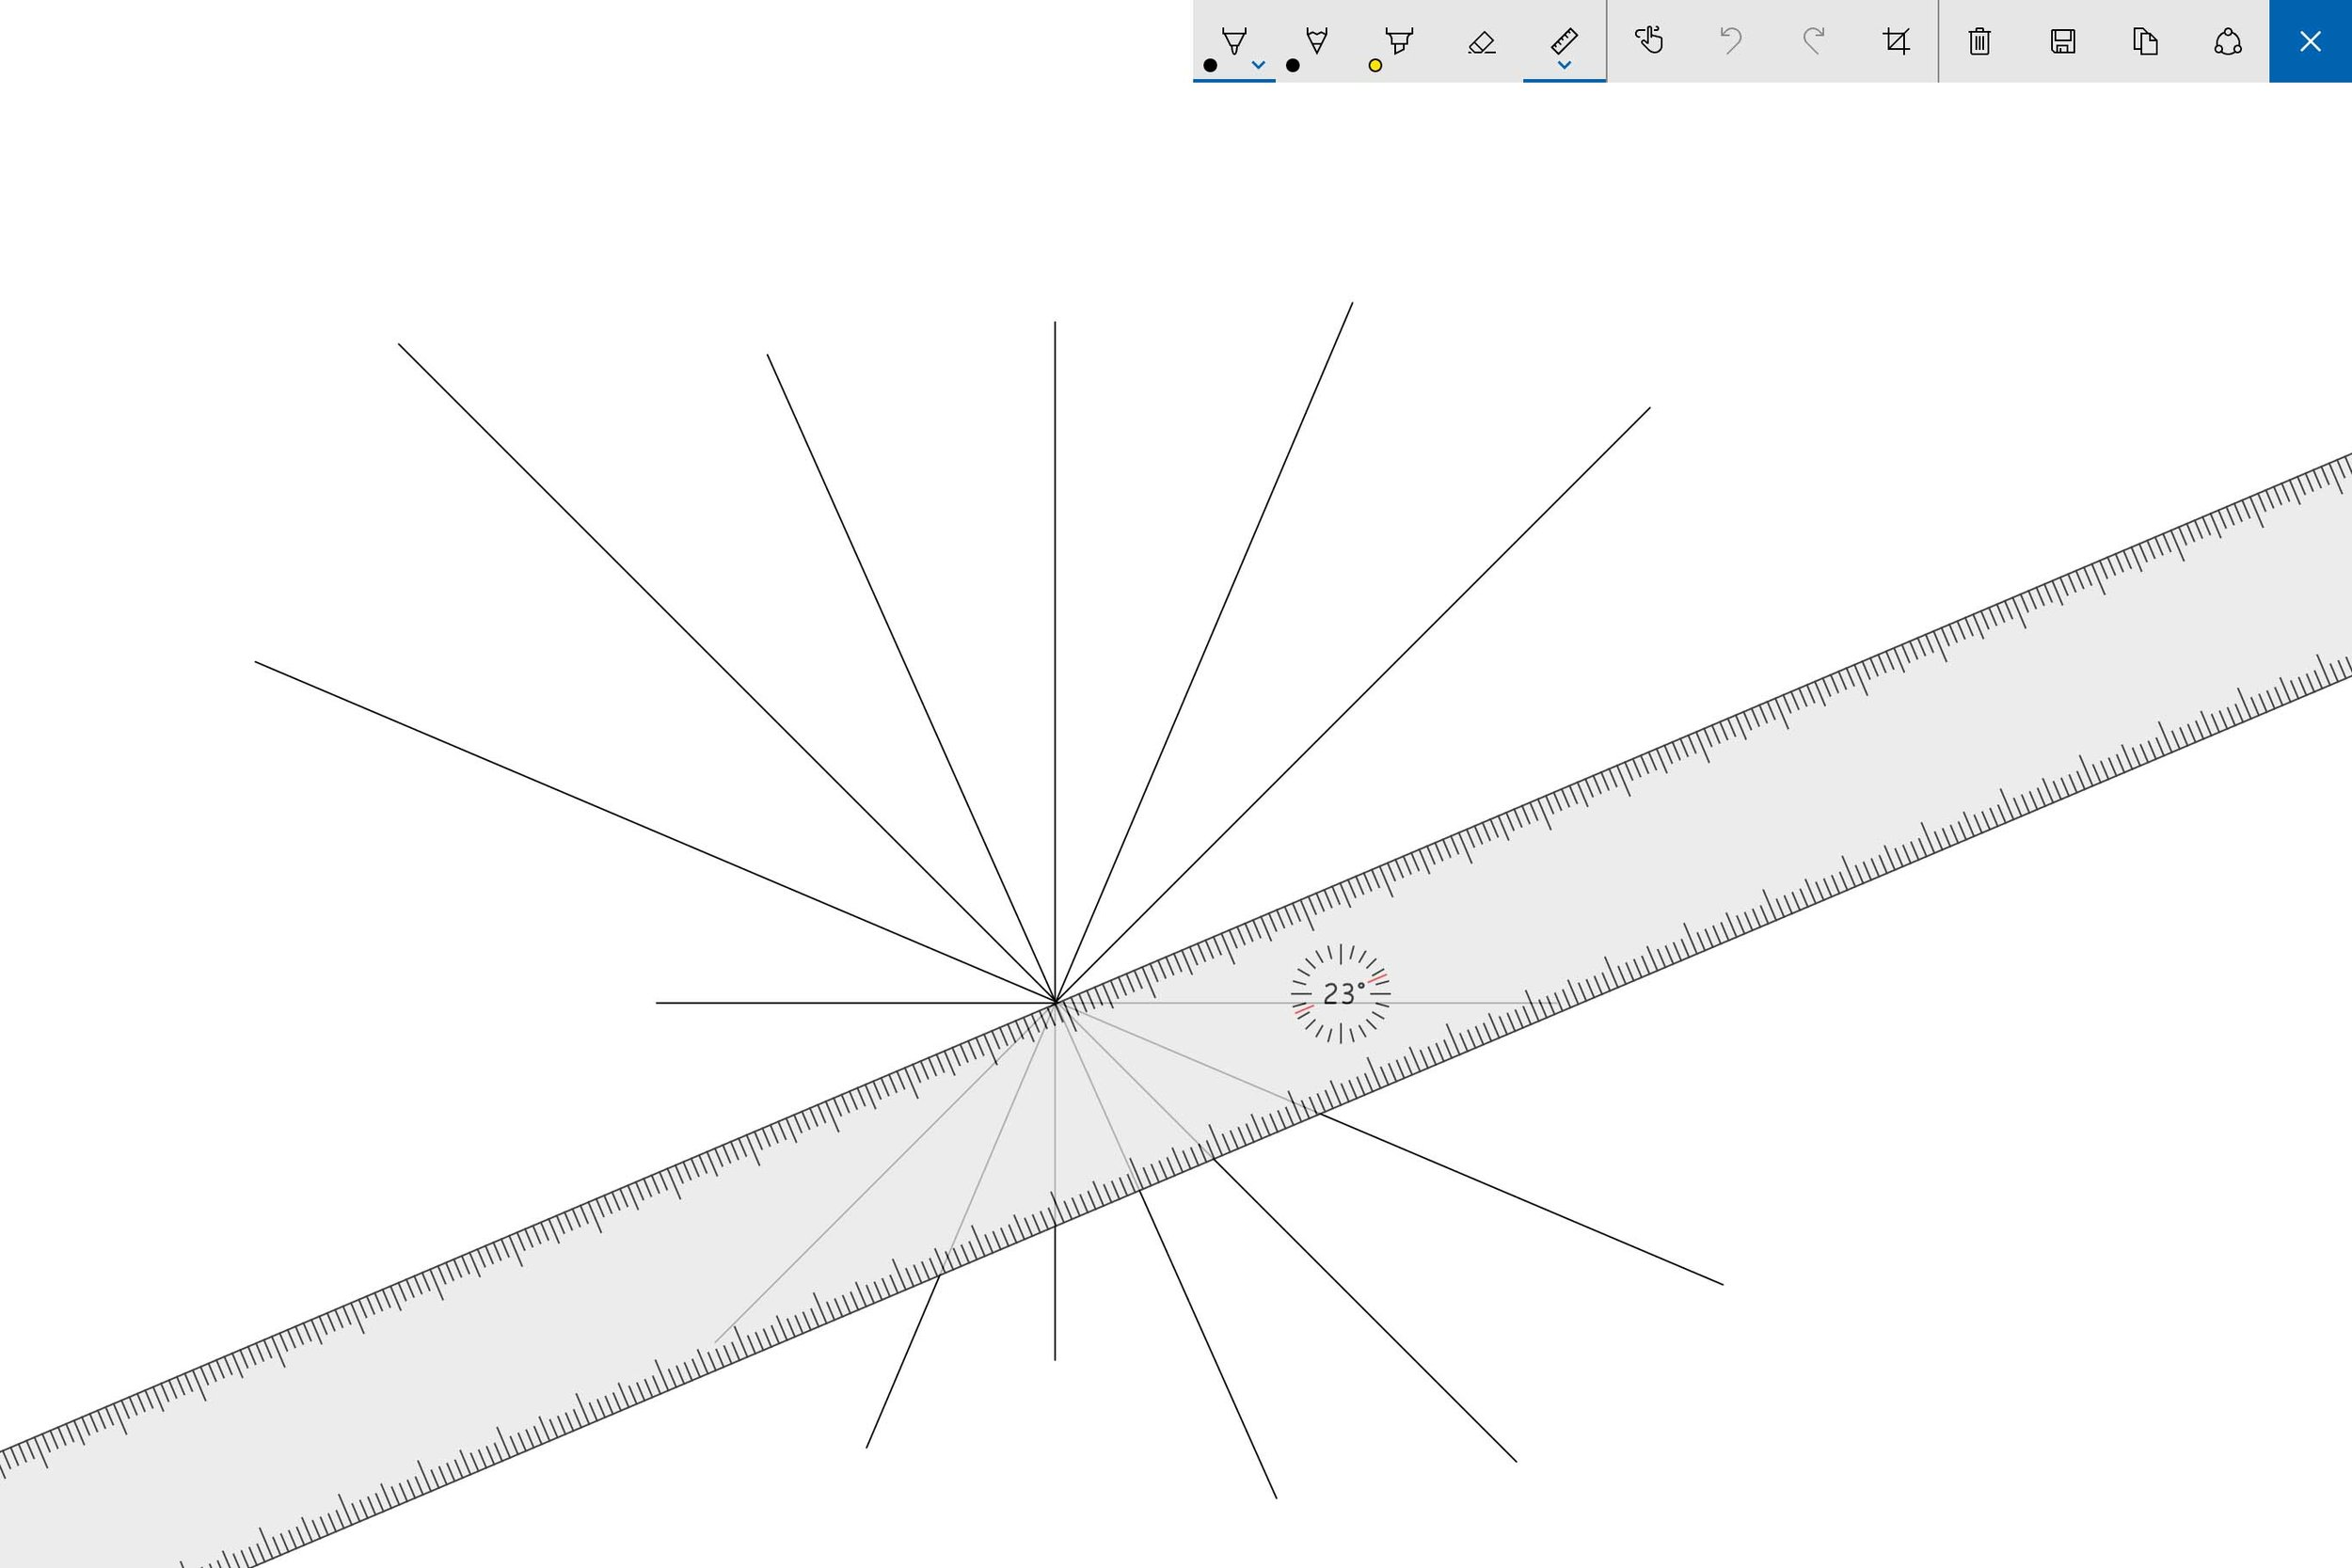 The Dial makes it easy to rotate the Sketchpad ruler to exact increments.